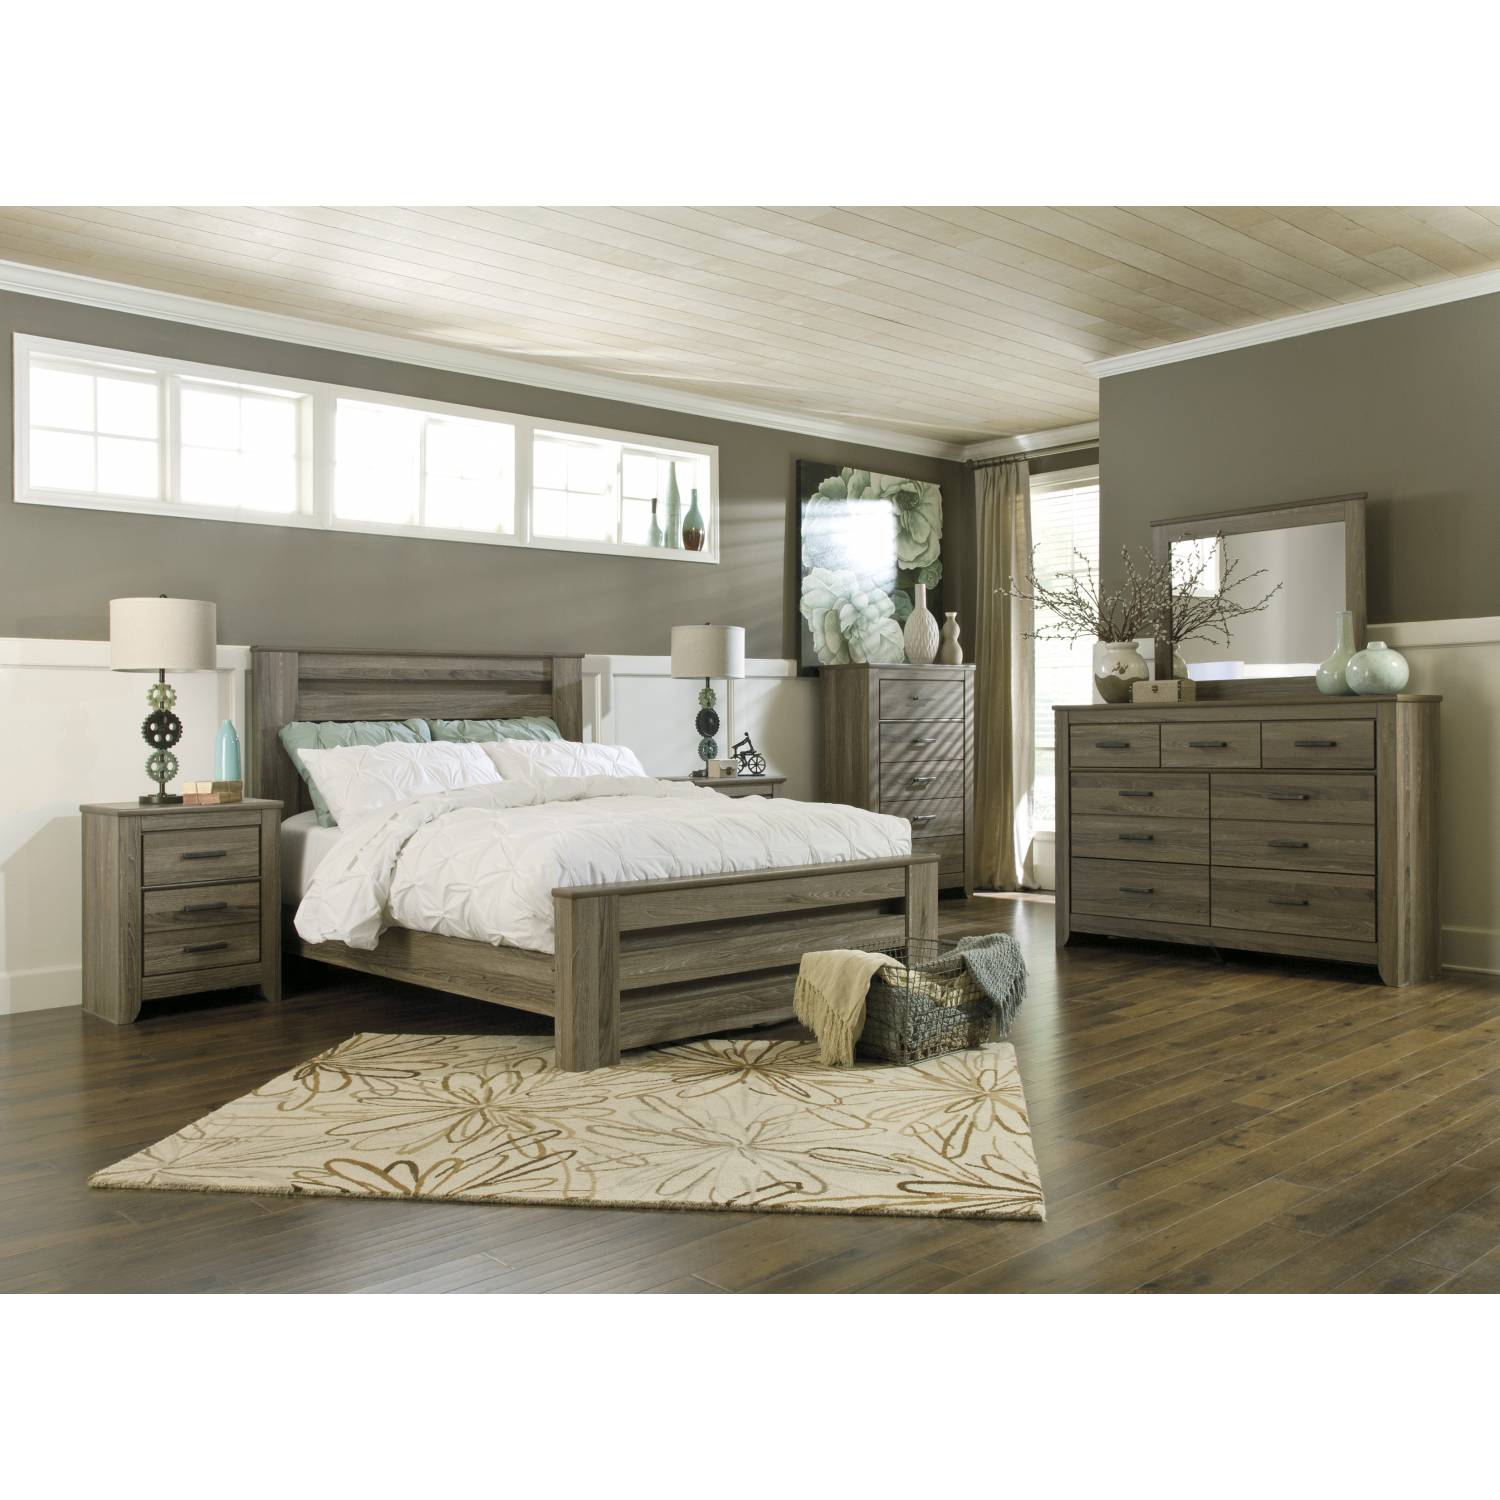 Bedroom Sets Sacramento furniture store san francisco - discount furniture store in san